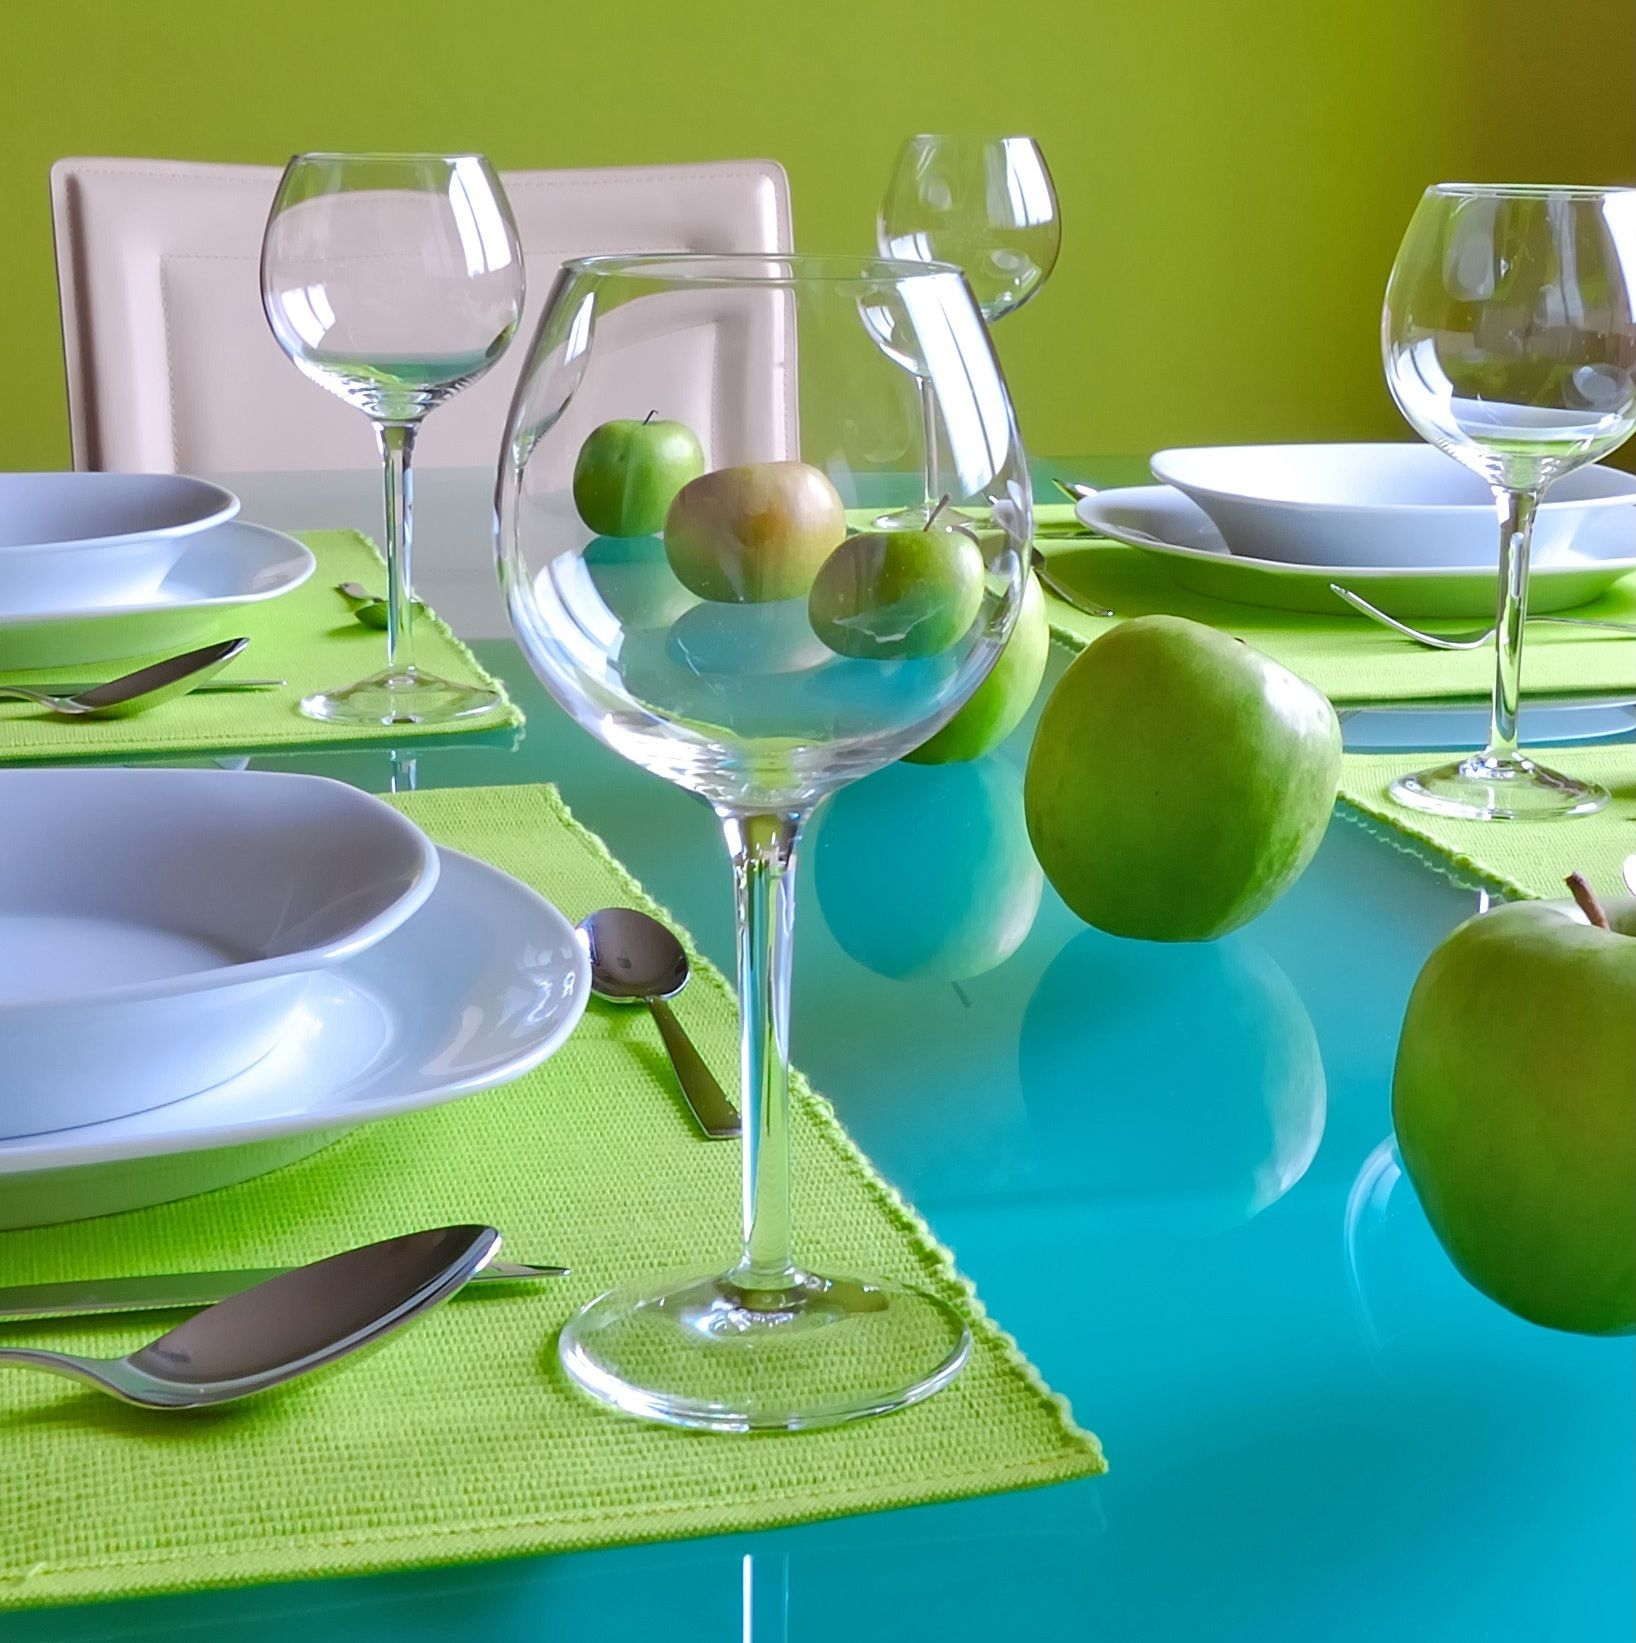 This Apartment Dining Room Is Stunning With A Blue Glass Table And Green Apple Wall Paint